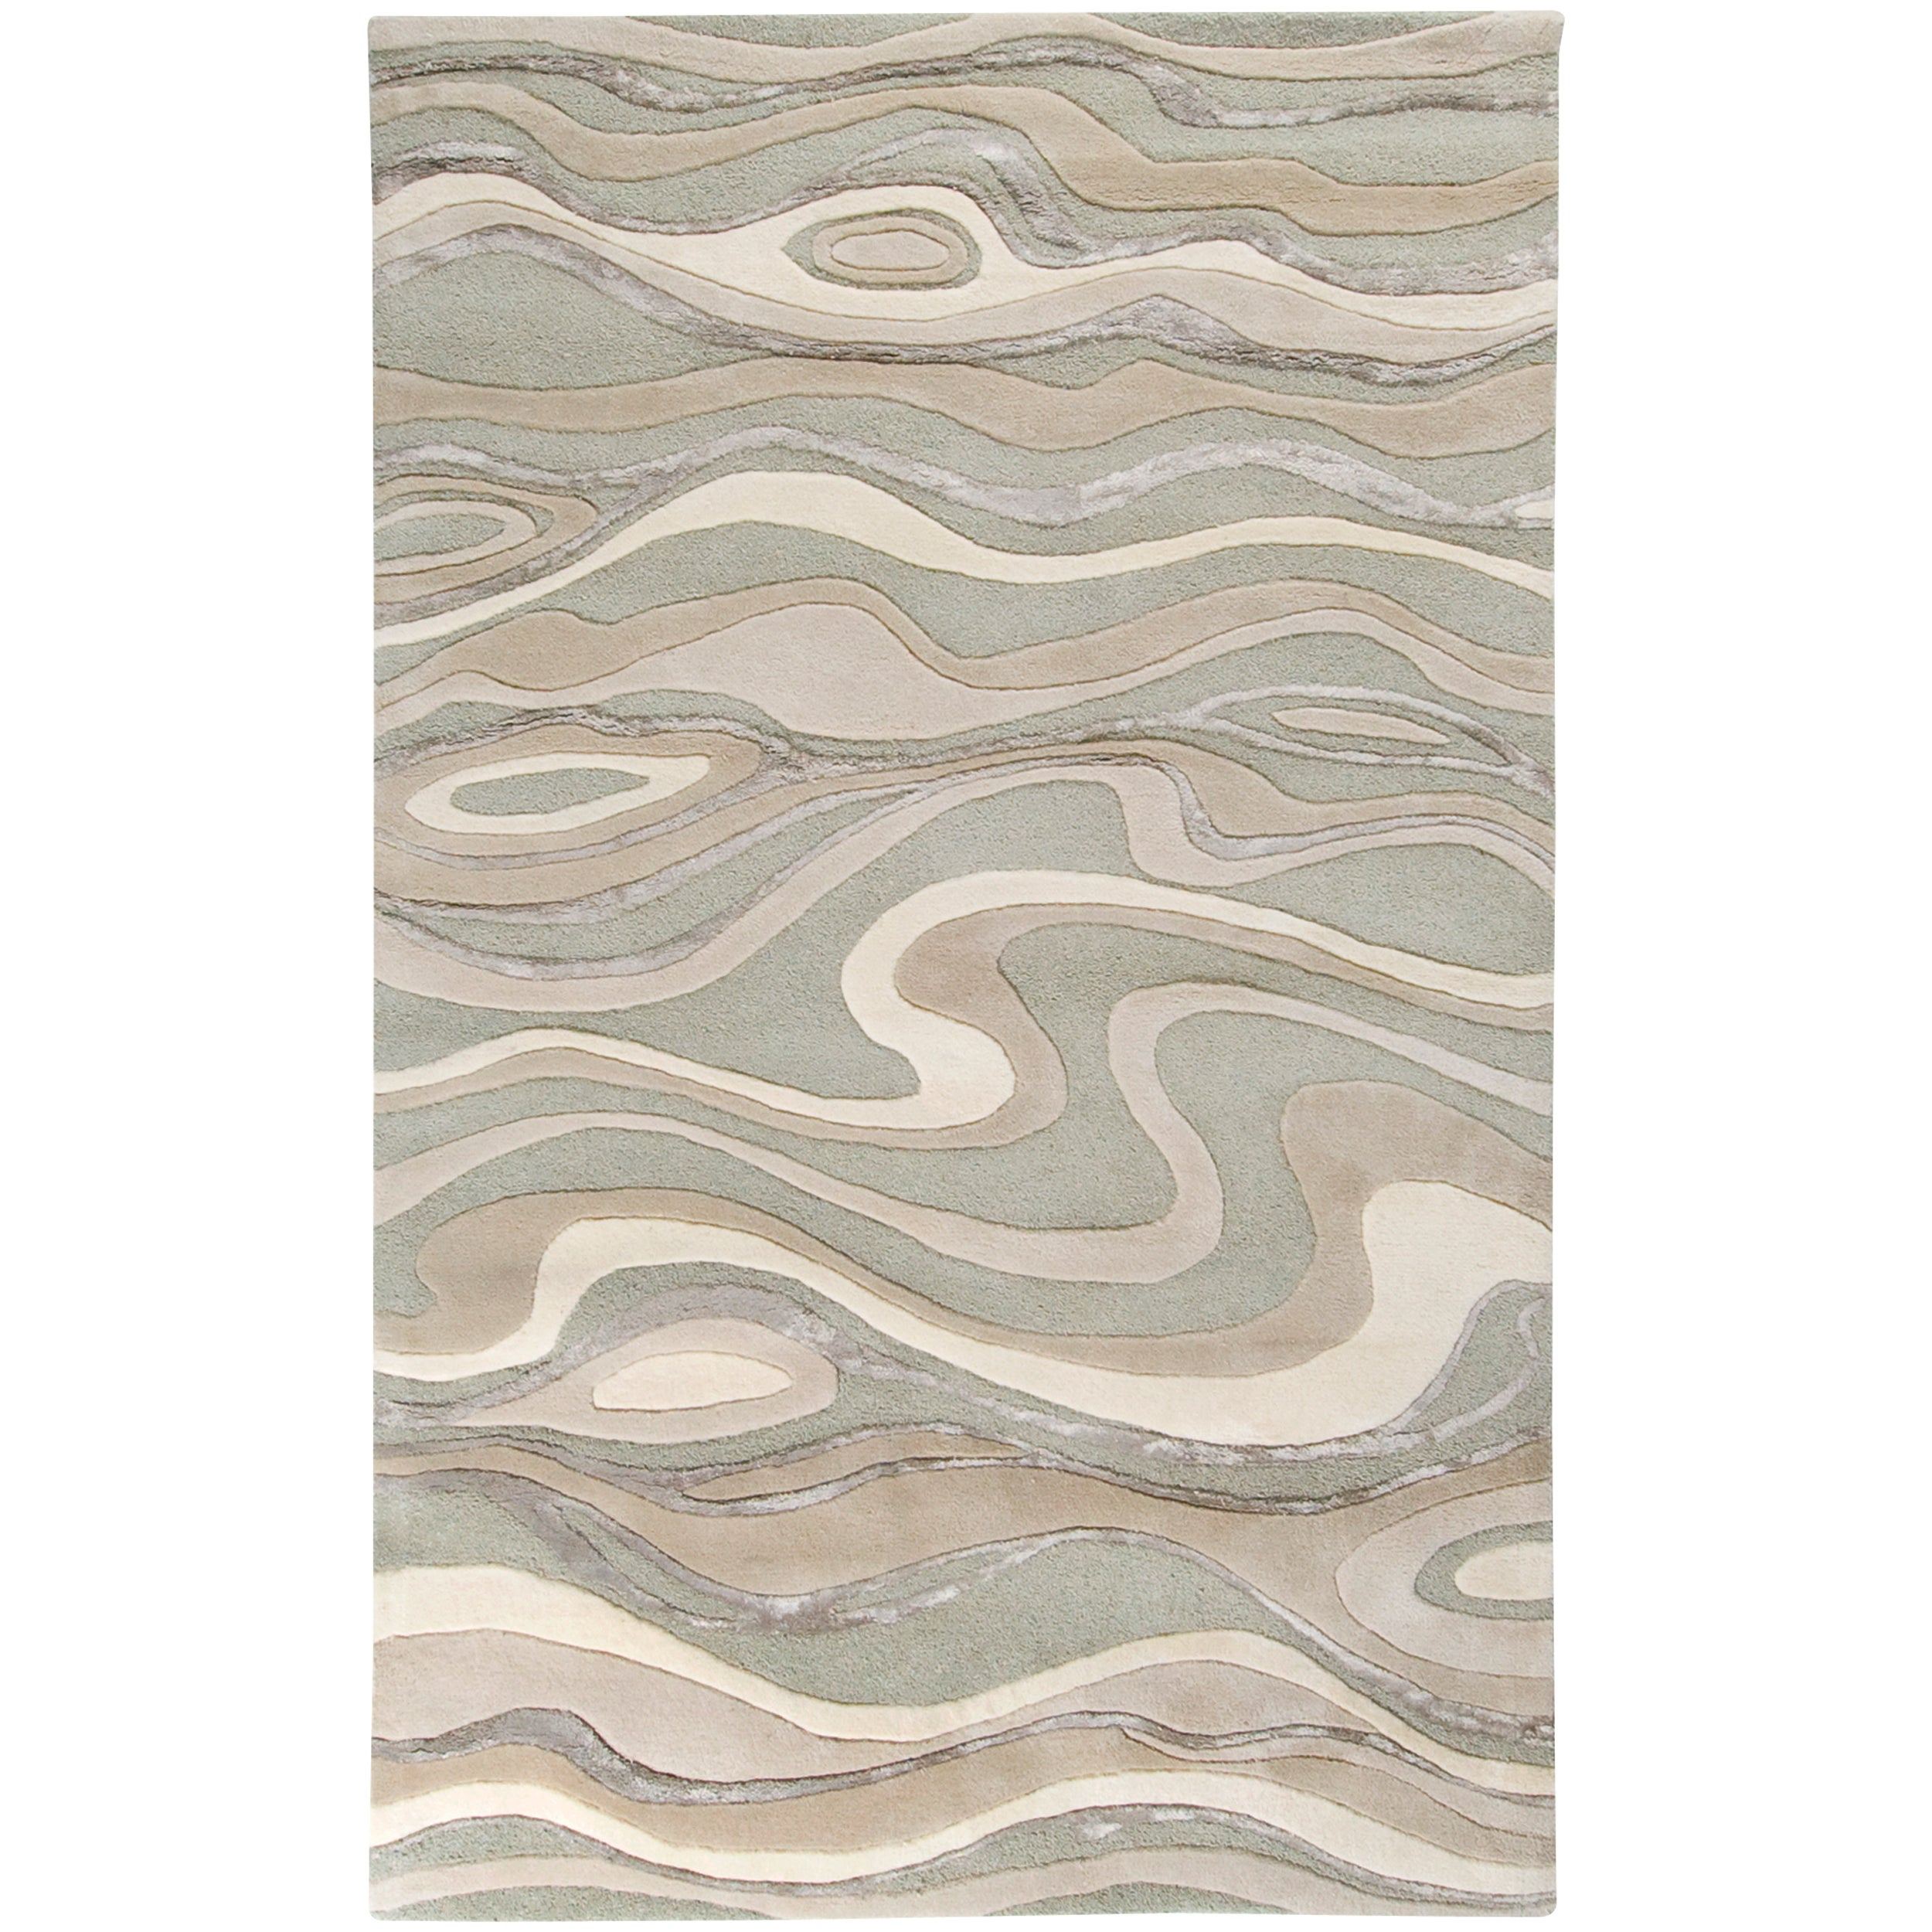 Hand-tufted Zagros Abstract Waves Wool Rug (9' x 13')